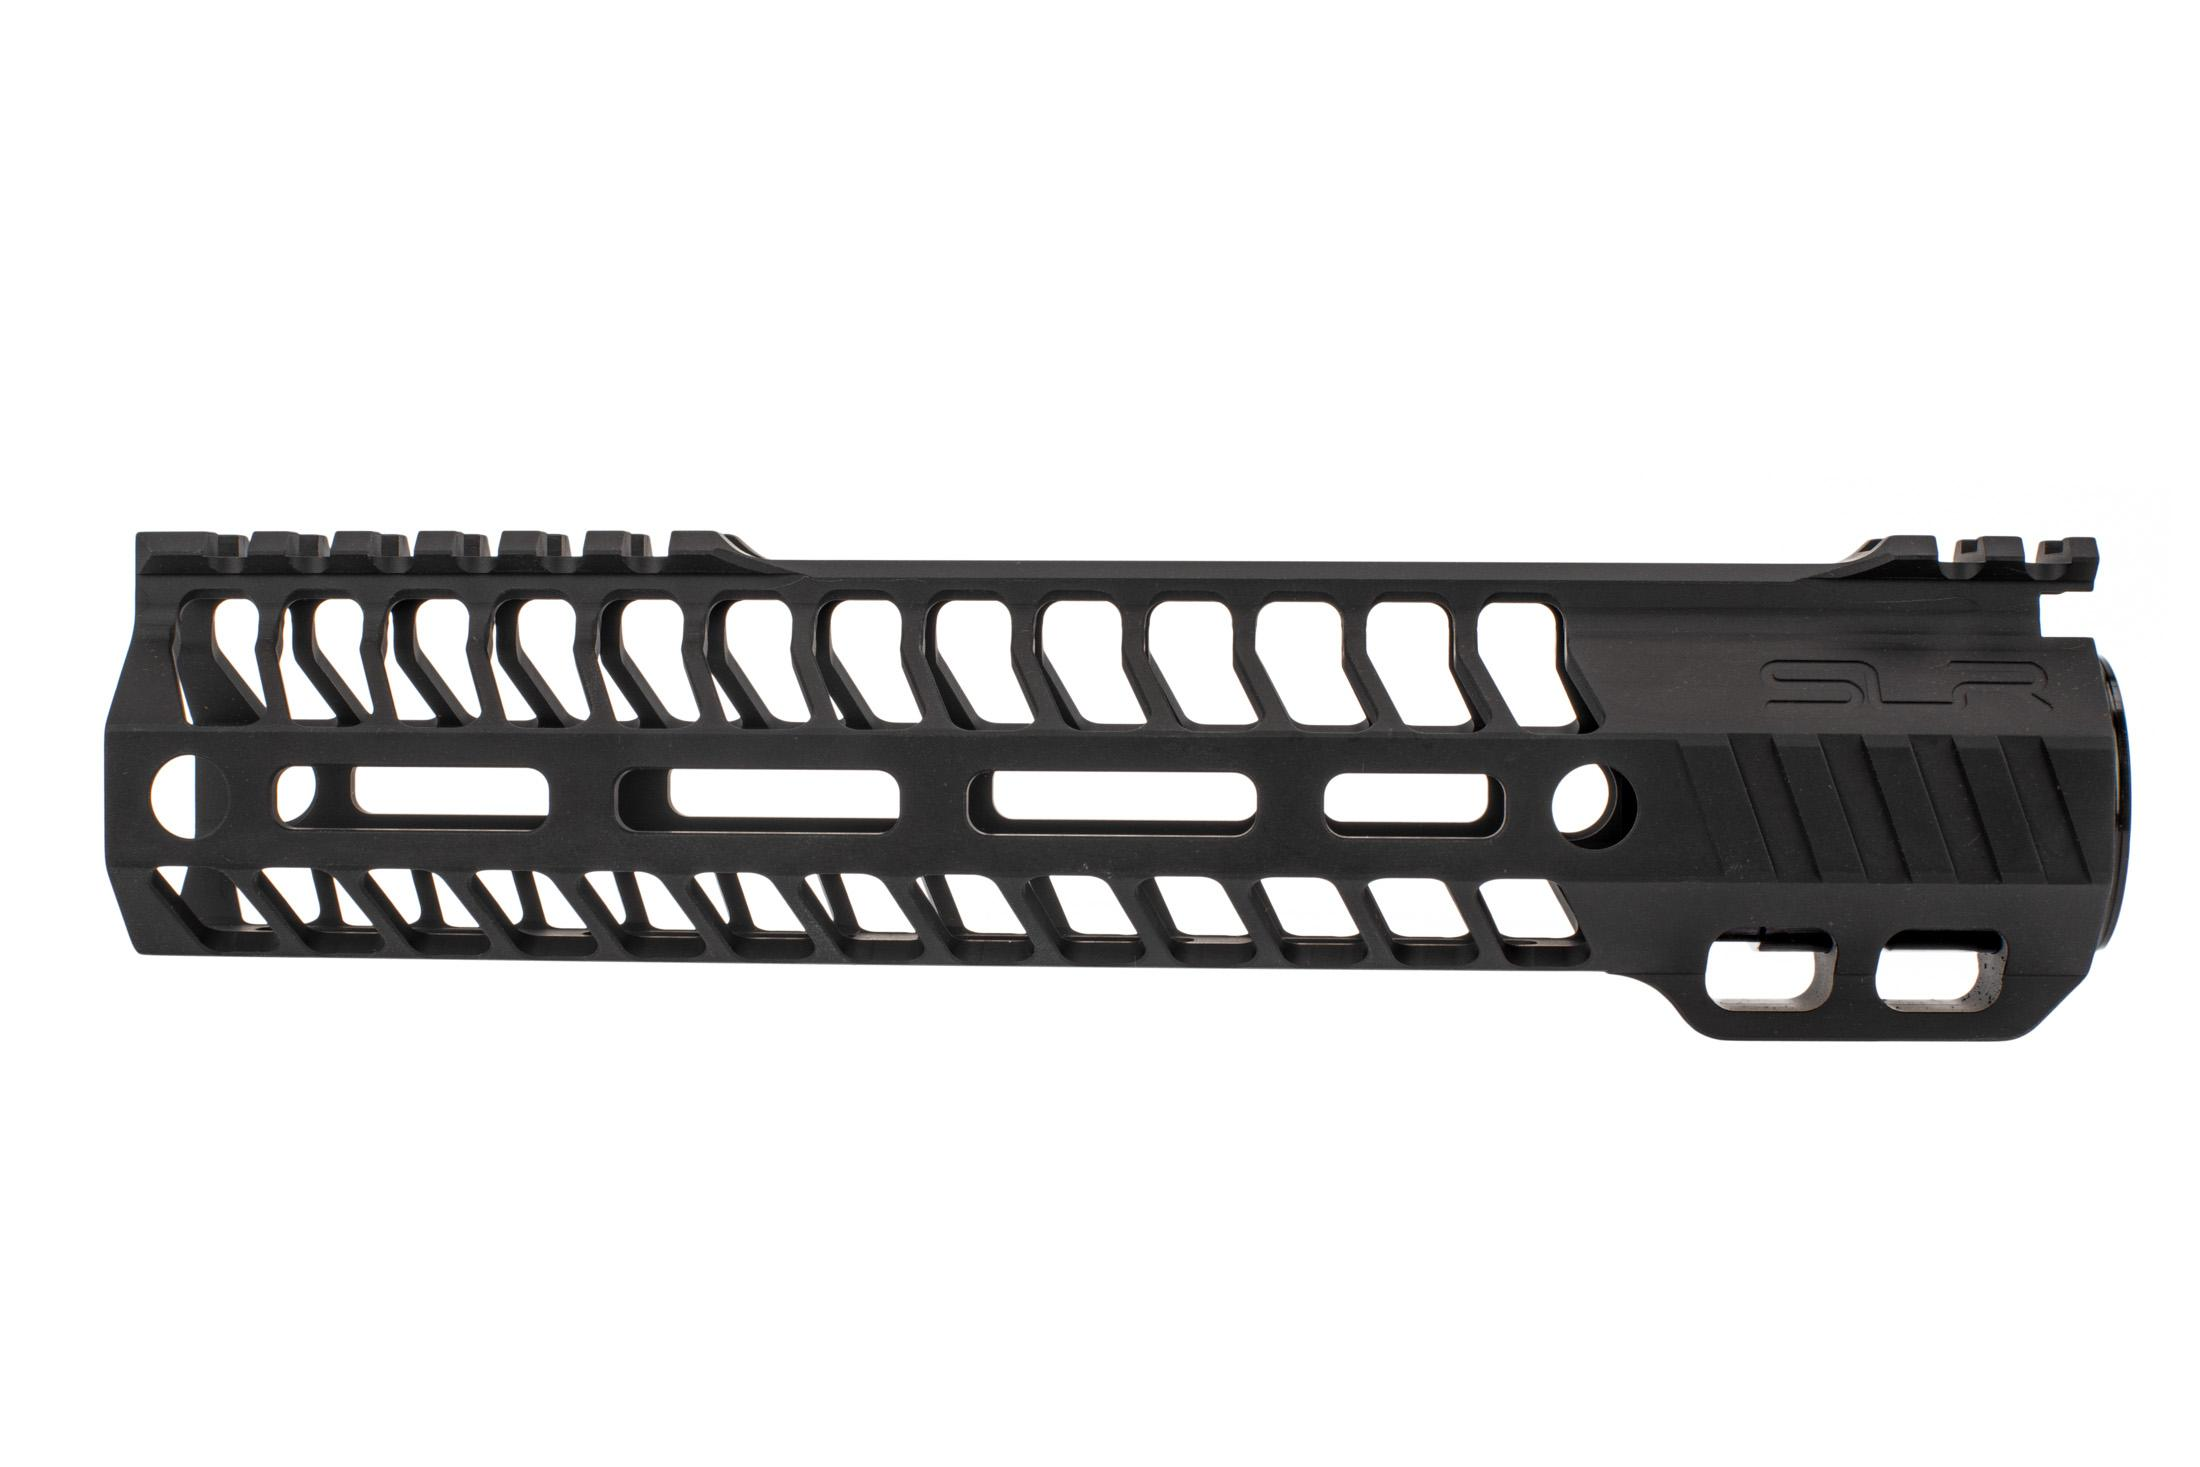 SLR Rifleworks M-LOK HELIX rail is 9.0 for AR15 with black anodized finish and interrupted top rail